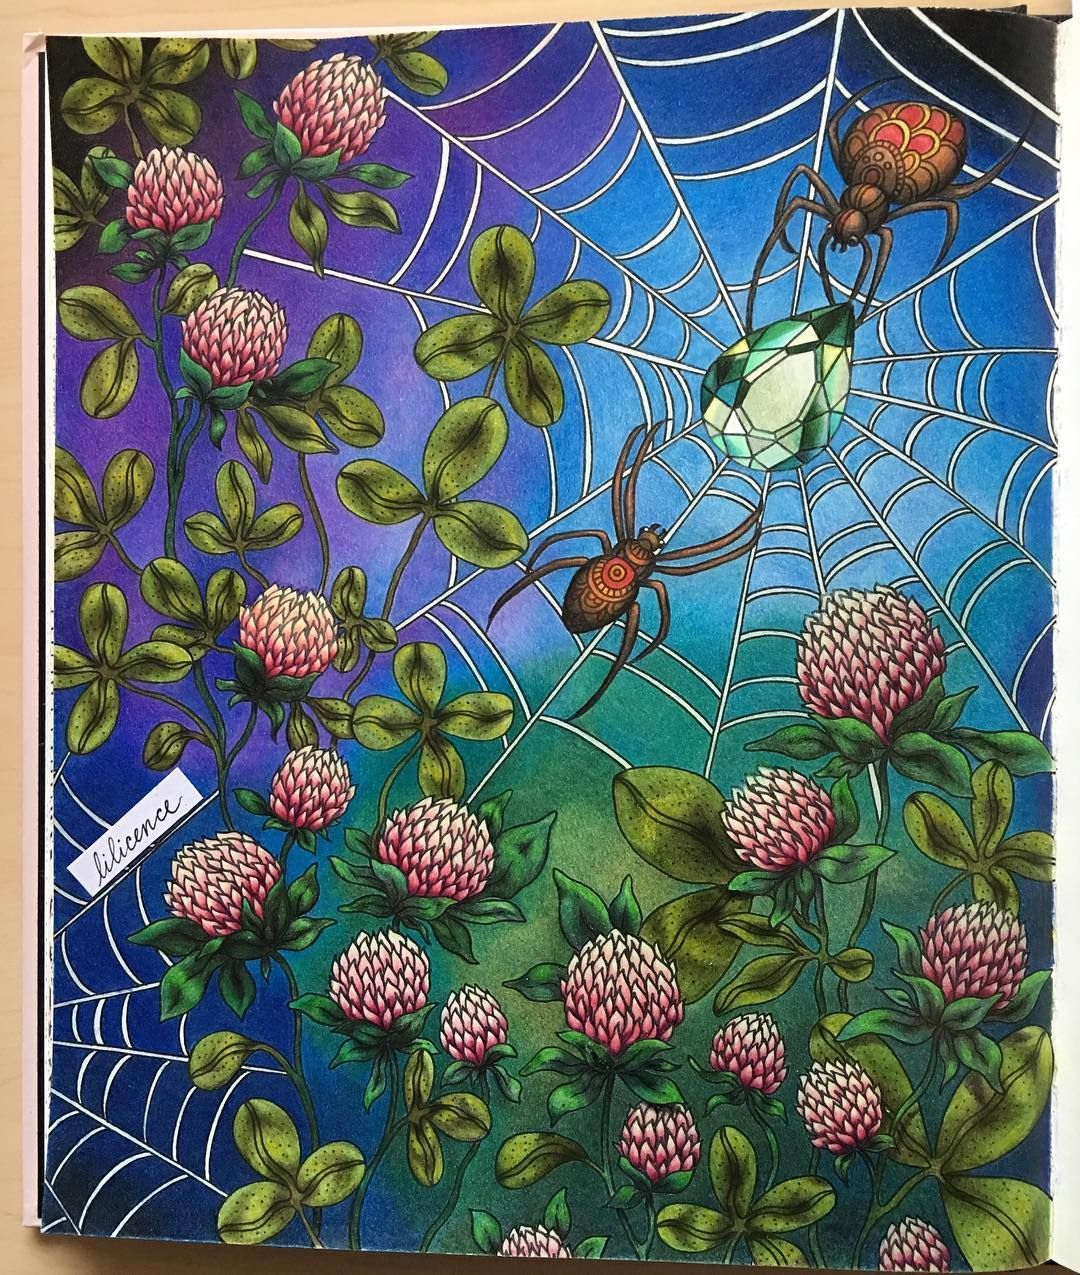 Oh my! It's finally done. This is the most coloring I have ever done (so many leaves ). I'm not good at limiting my colors, but I hope this isn't garish to your eyes. Thanks for taking a looking! Summer Nights by Hanna Karlzon done in colored pencils with a few fineliner touches. #adultcoloringbook #coloring #hannakarlzon